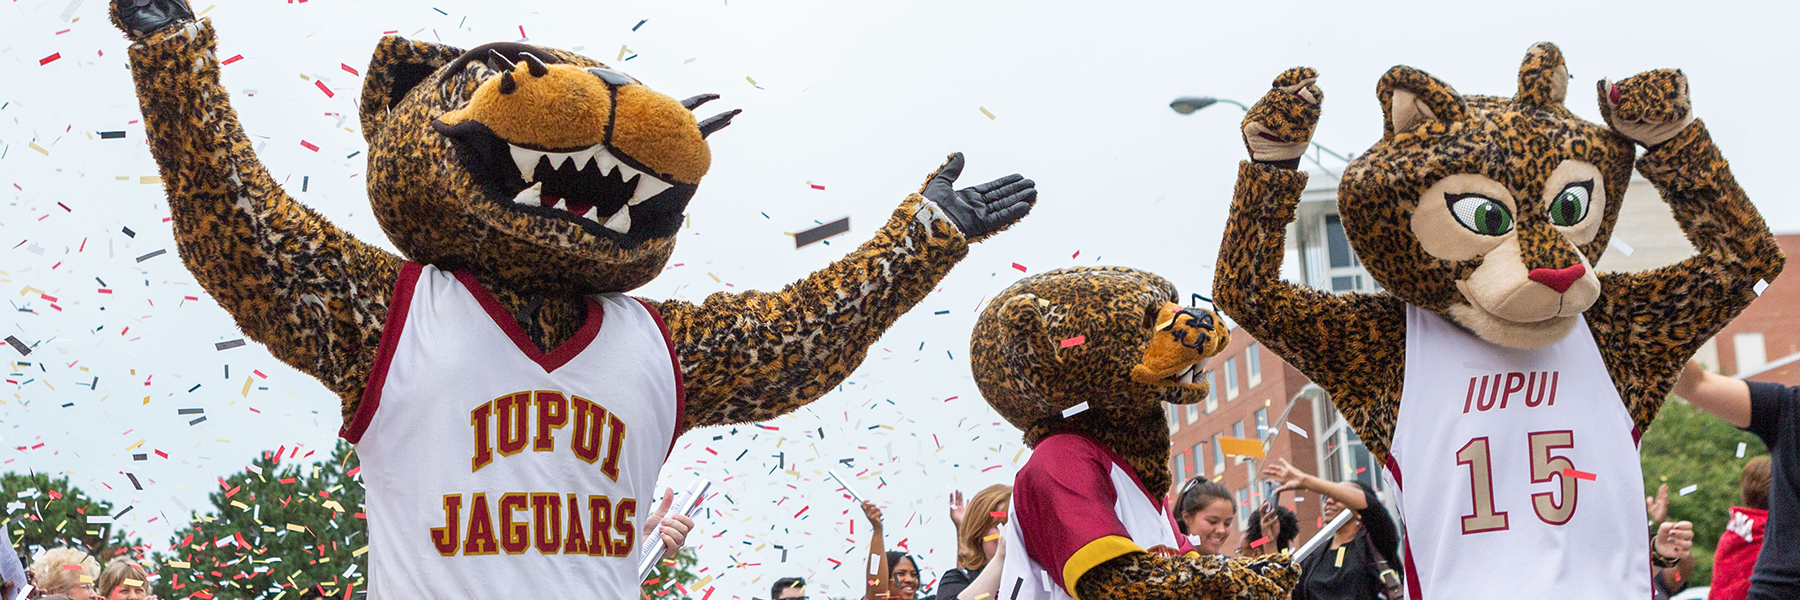 IUPUI's three jaguar mascots (order, Jawz, Jinx, and Jazzy) walk down the street during a parade in downtown Indianapolis. Jawz and Jazzy have their arms raised in a cheer. Colorful confetti surrounds them.